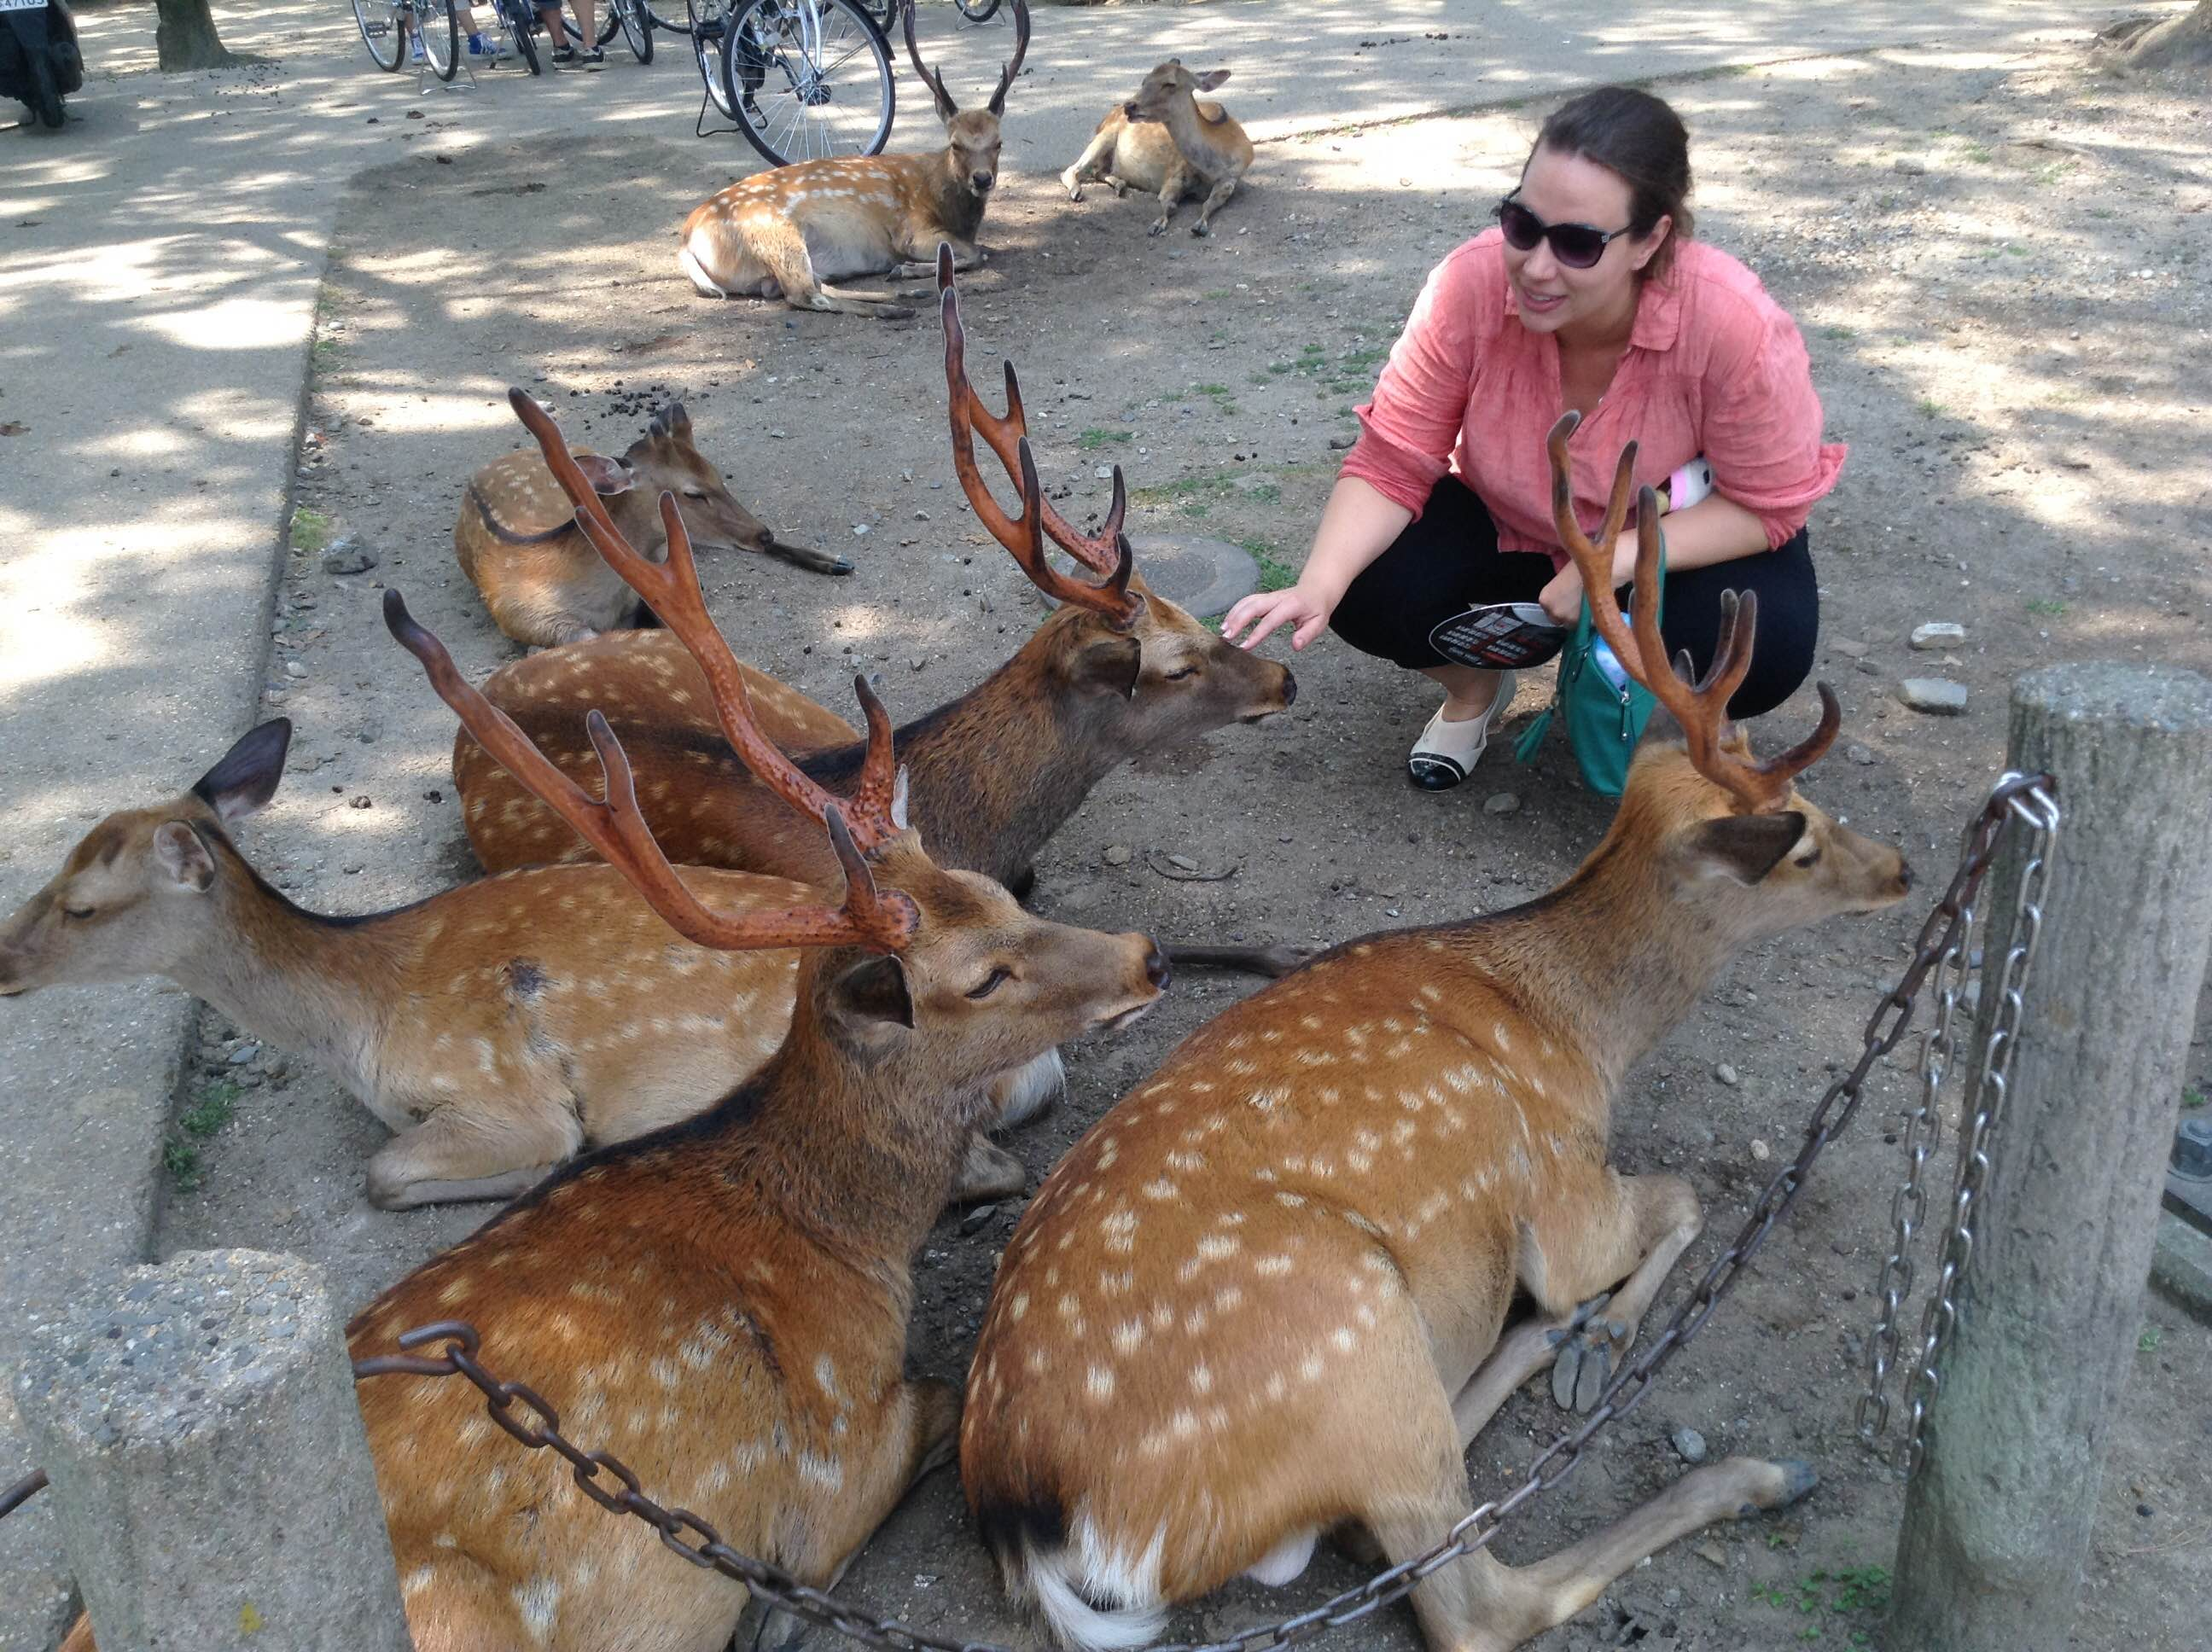 Feeding the Deer in Nara, Japan - www.AFriendAfar.com